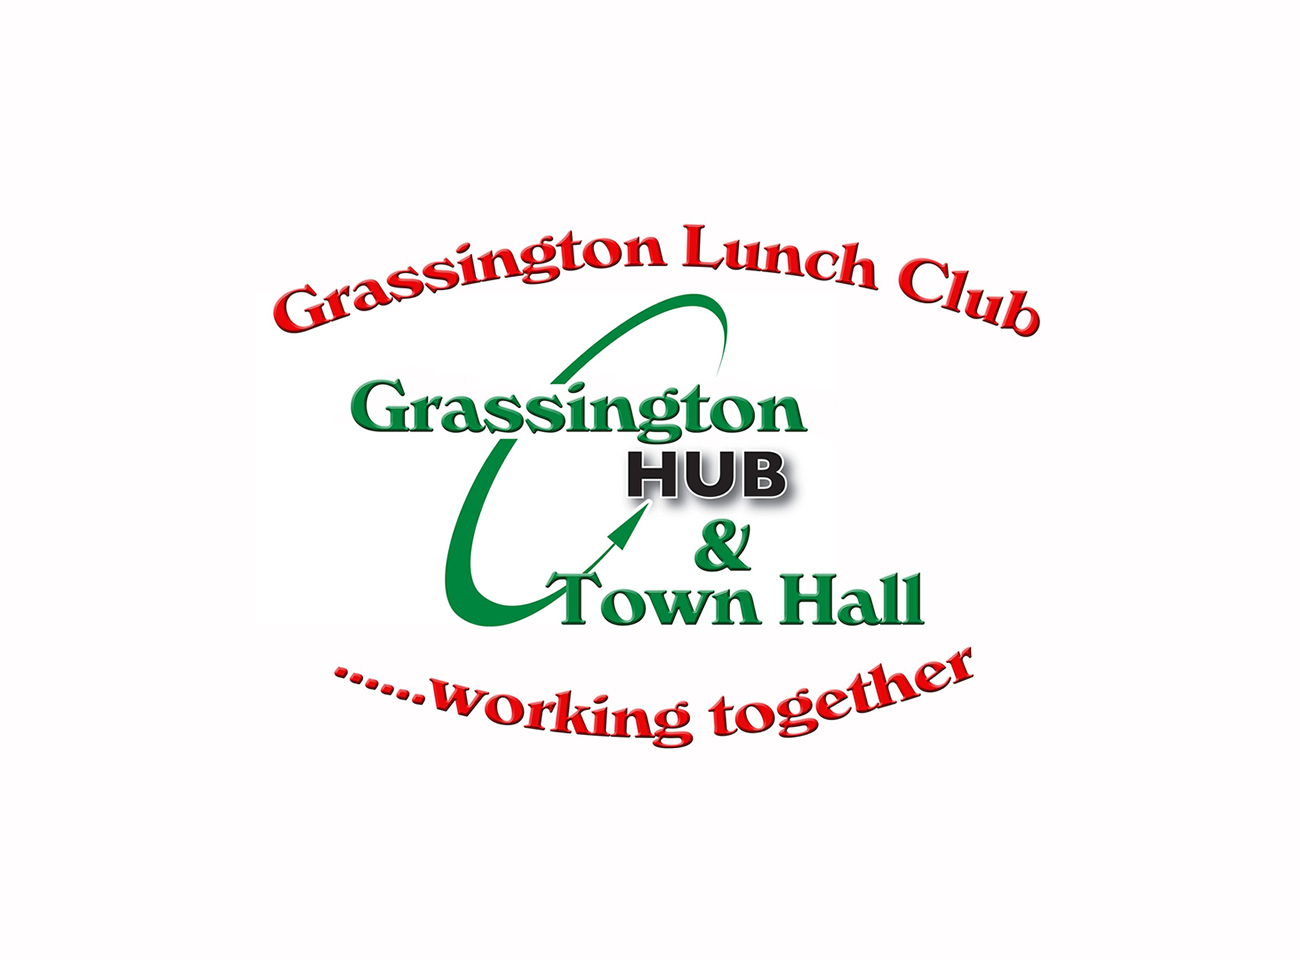 Grassington Lunch Club